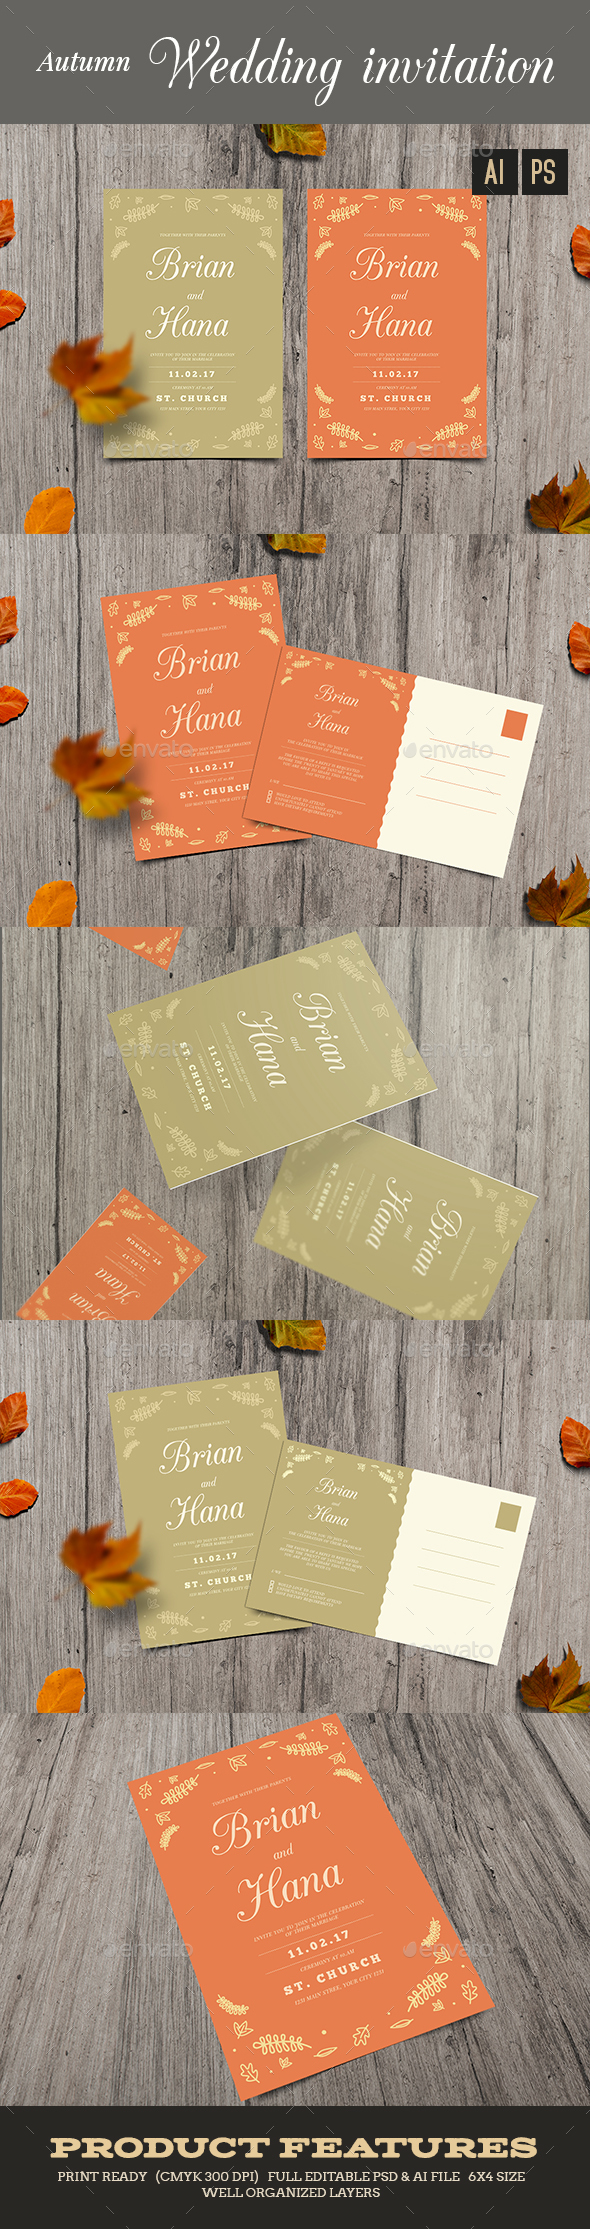 Autumn Wedding invitation/RSVP